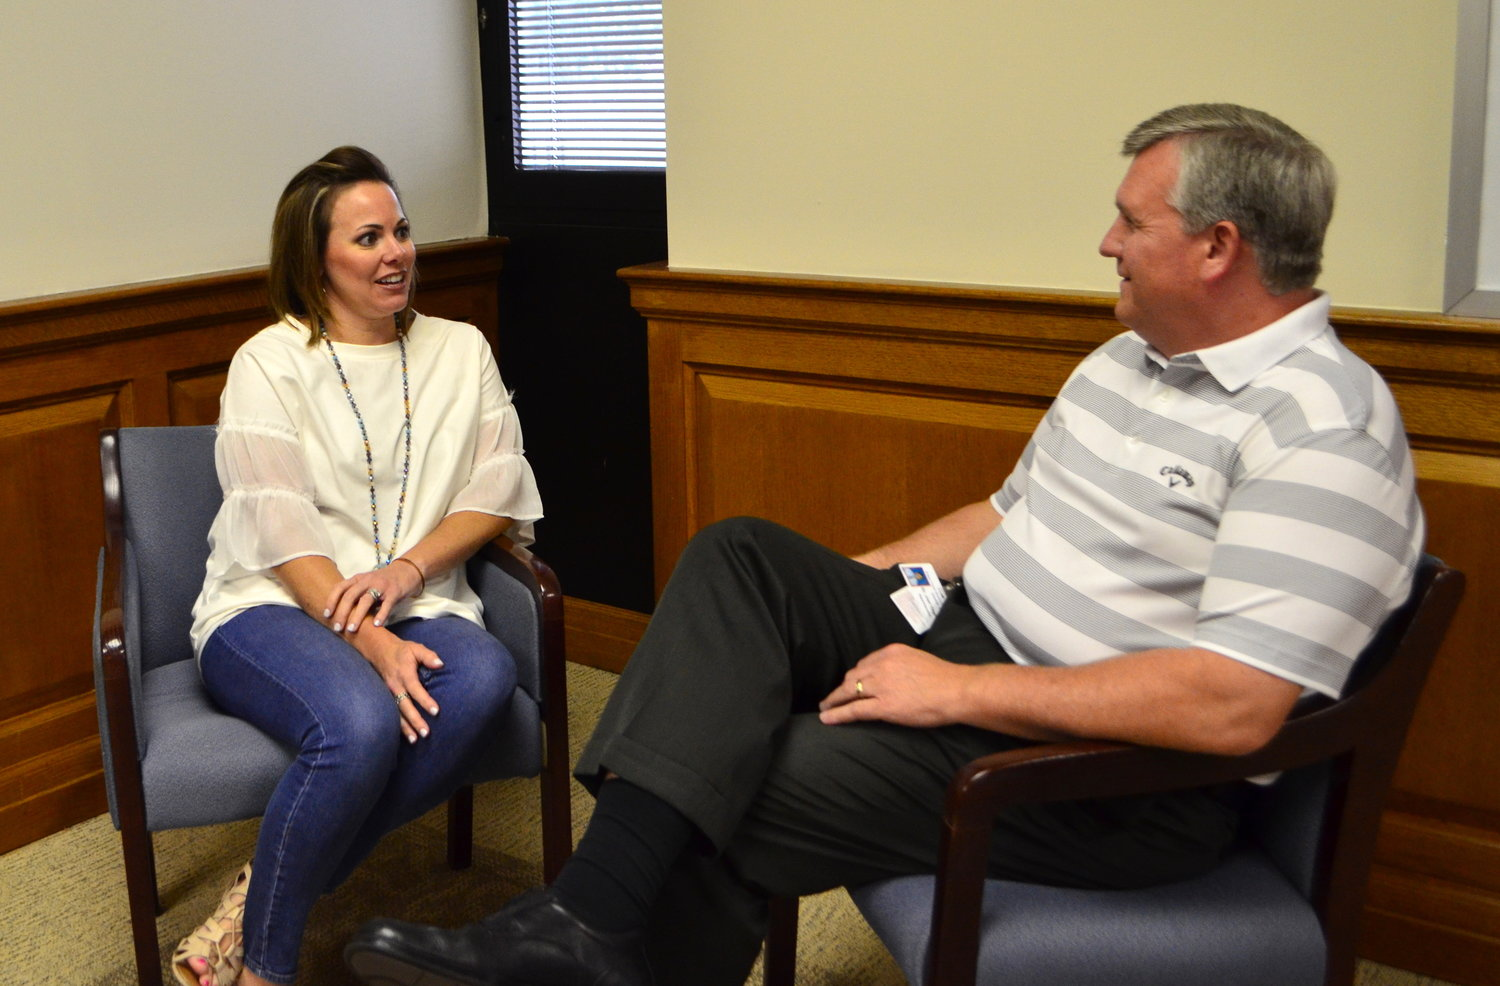 The Walker County Board of Education's new mental health coordinator, Misty Whisenhunt, and Superintendent Dr. Joel Hagood, have a discussion at the school system's central office on Thursday.